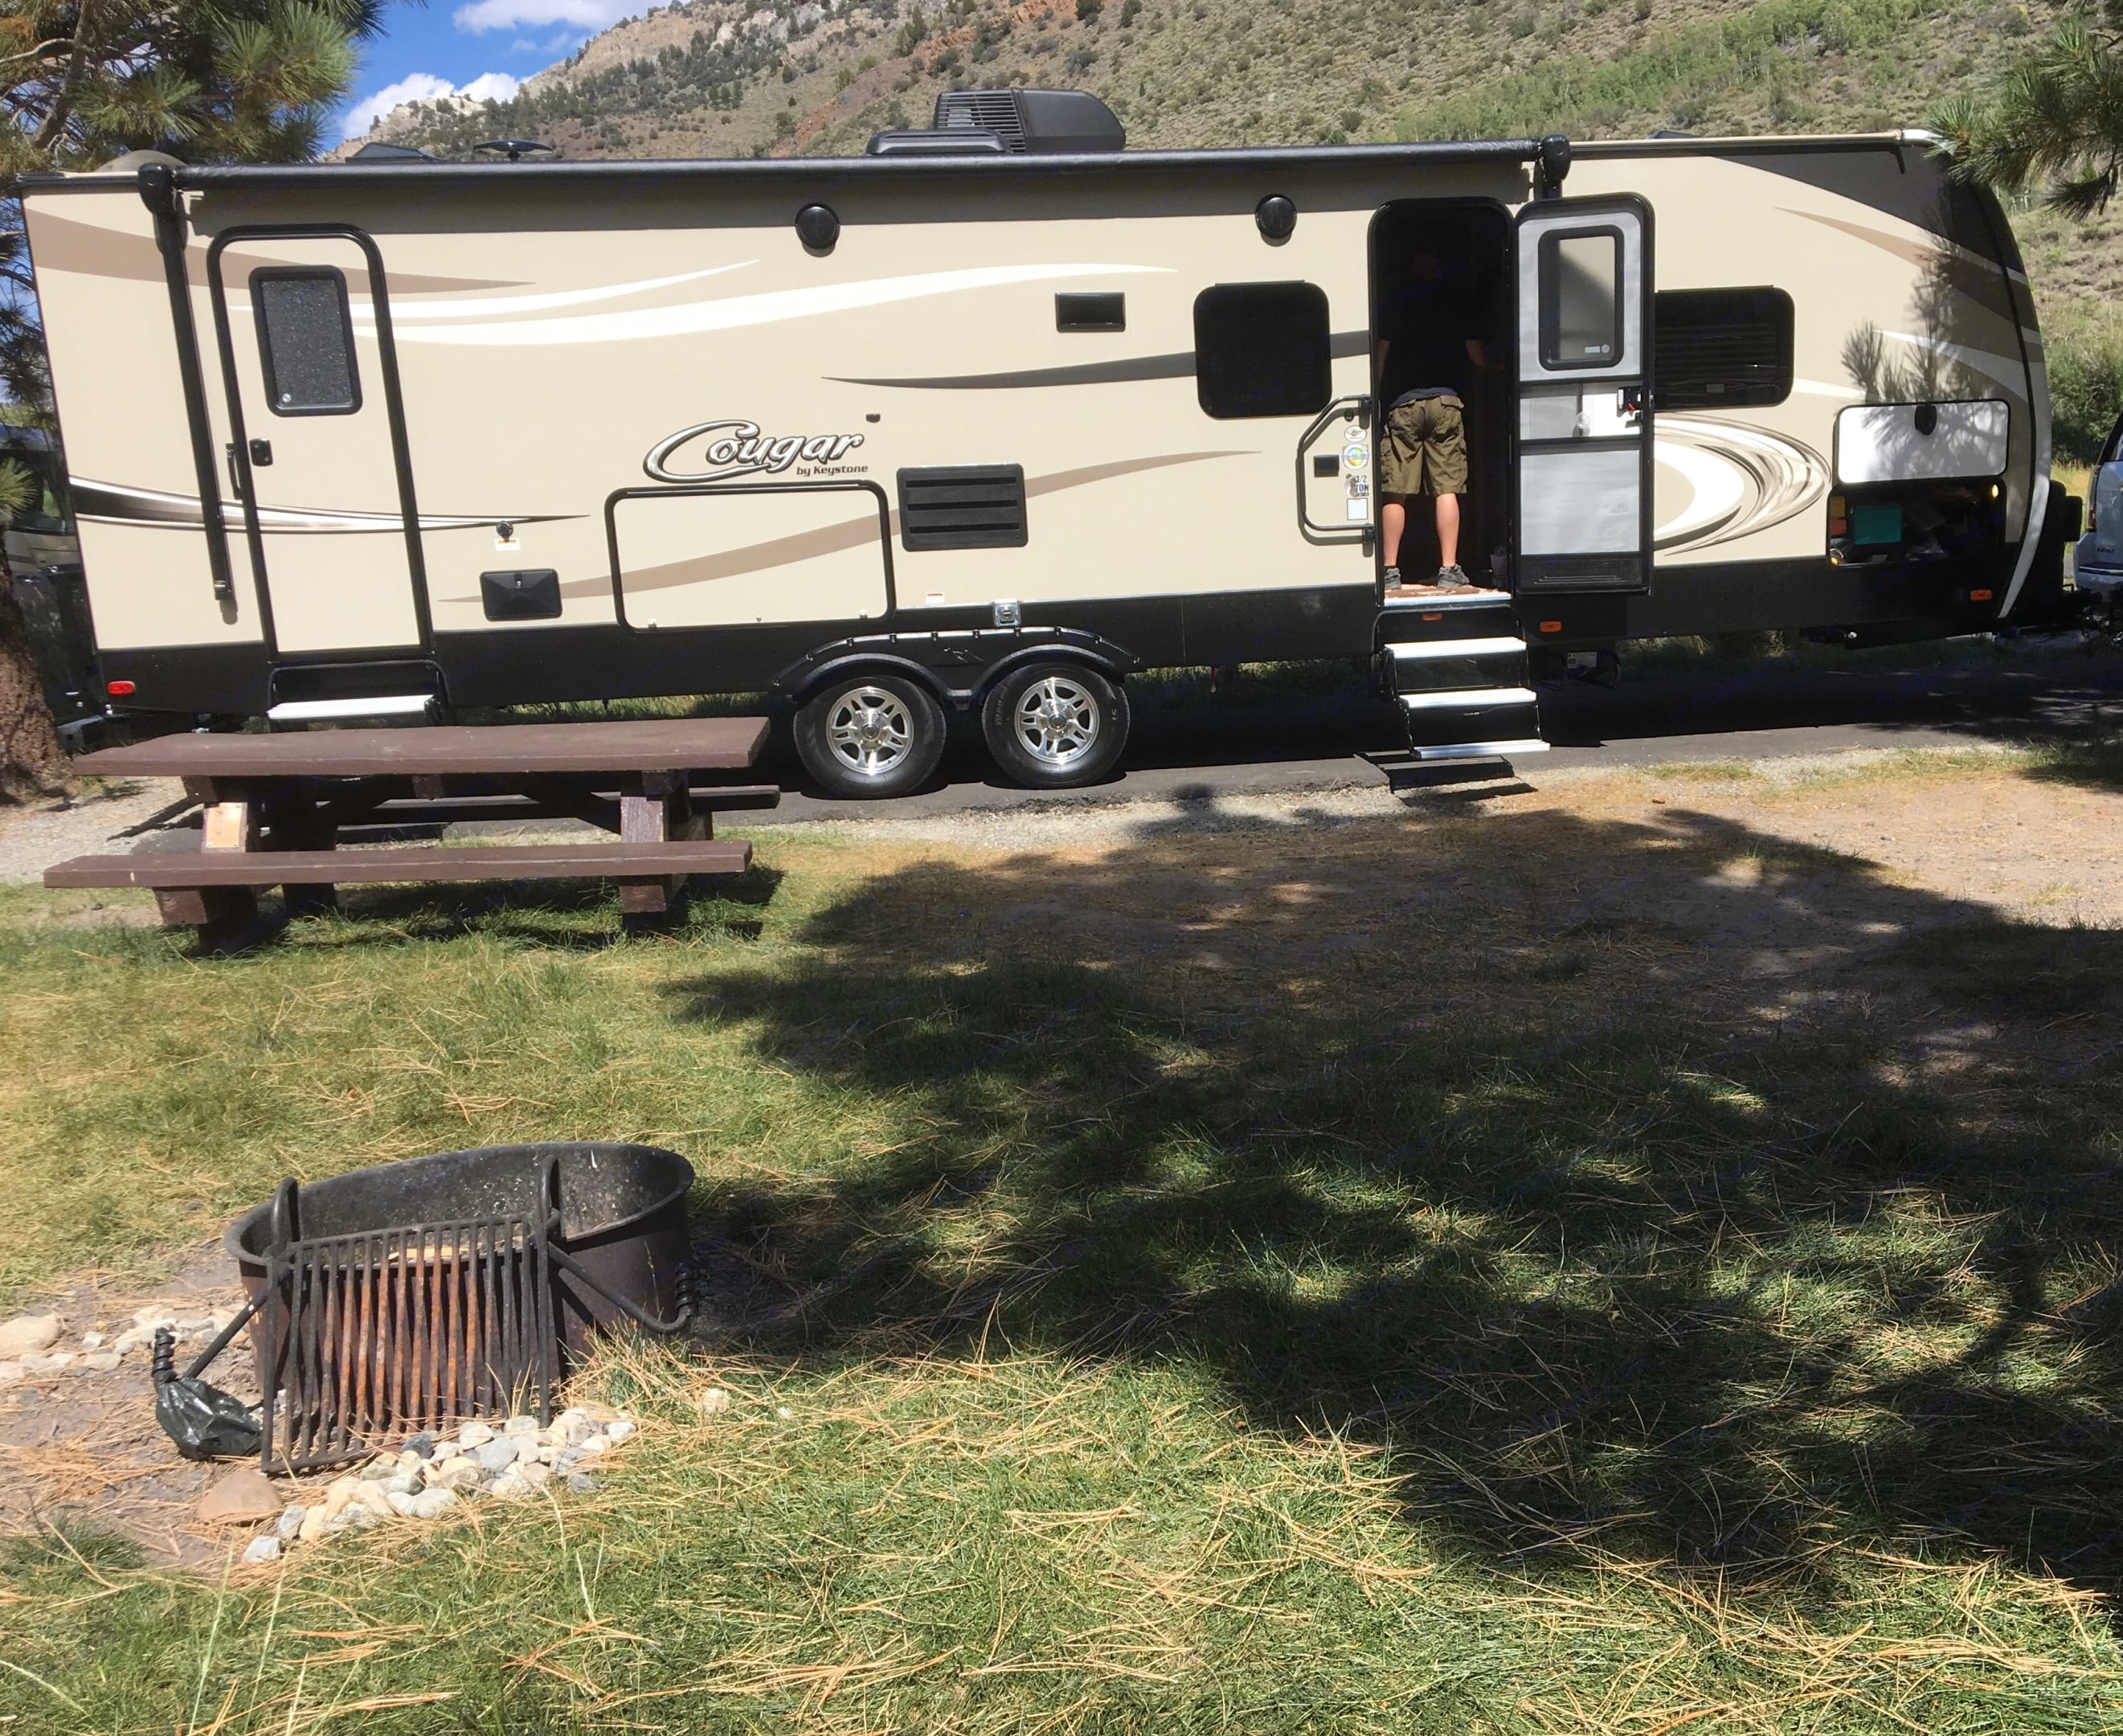 29 Ft Cougar with King Bed and oversized bunk beds. Keystone Cougar 2018